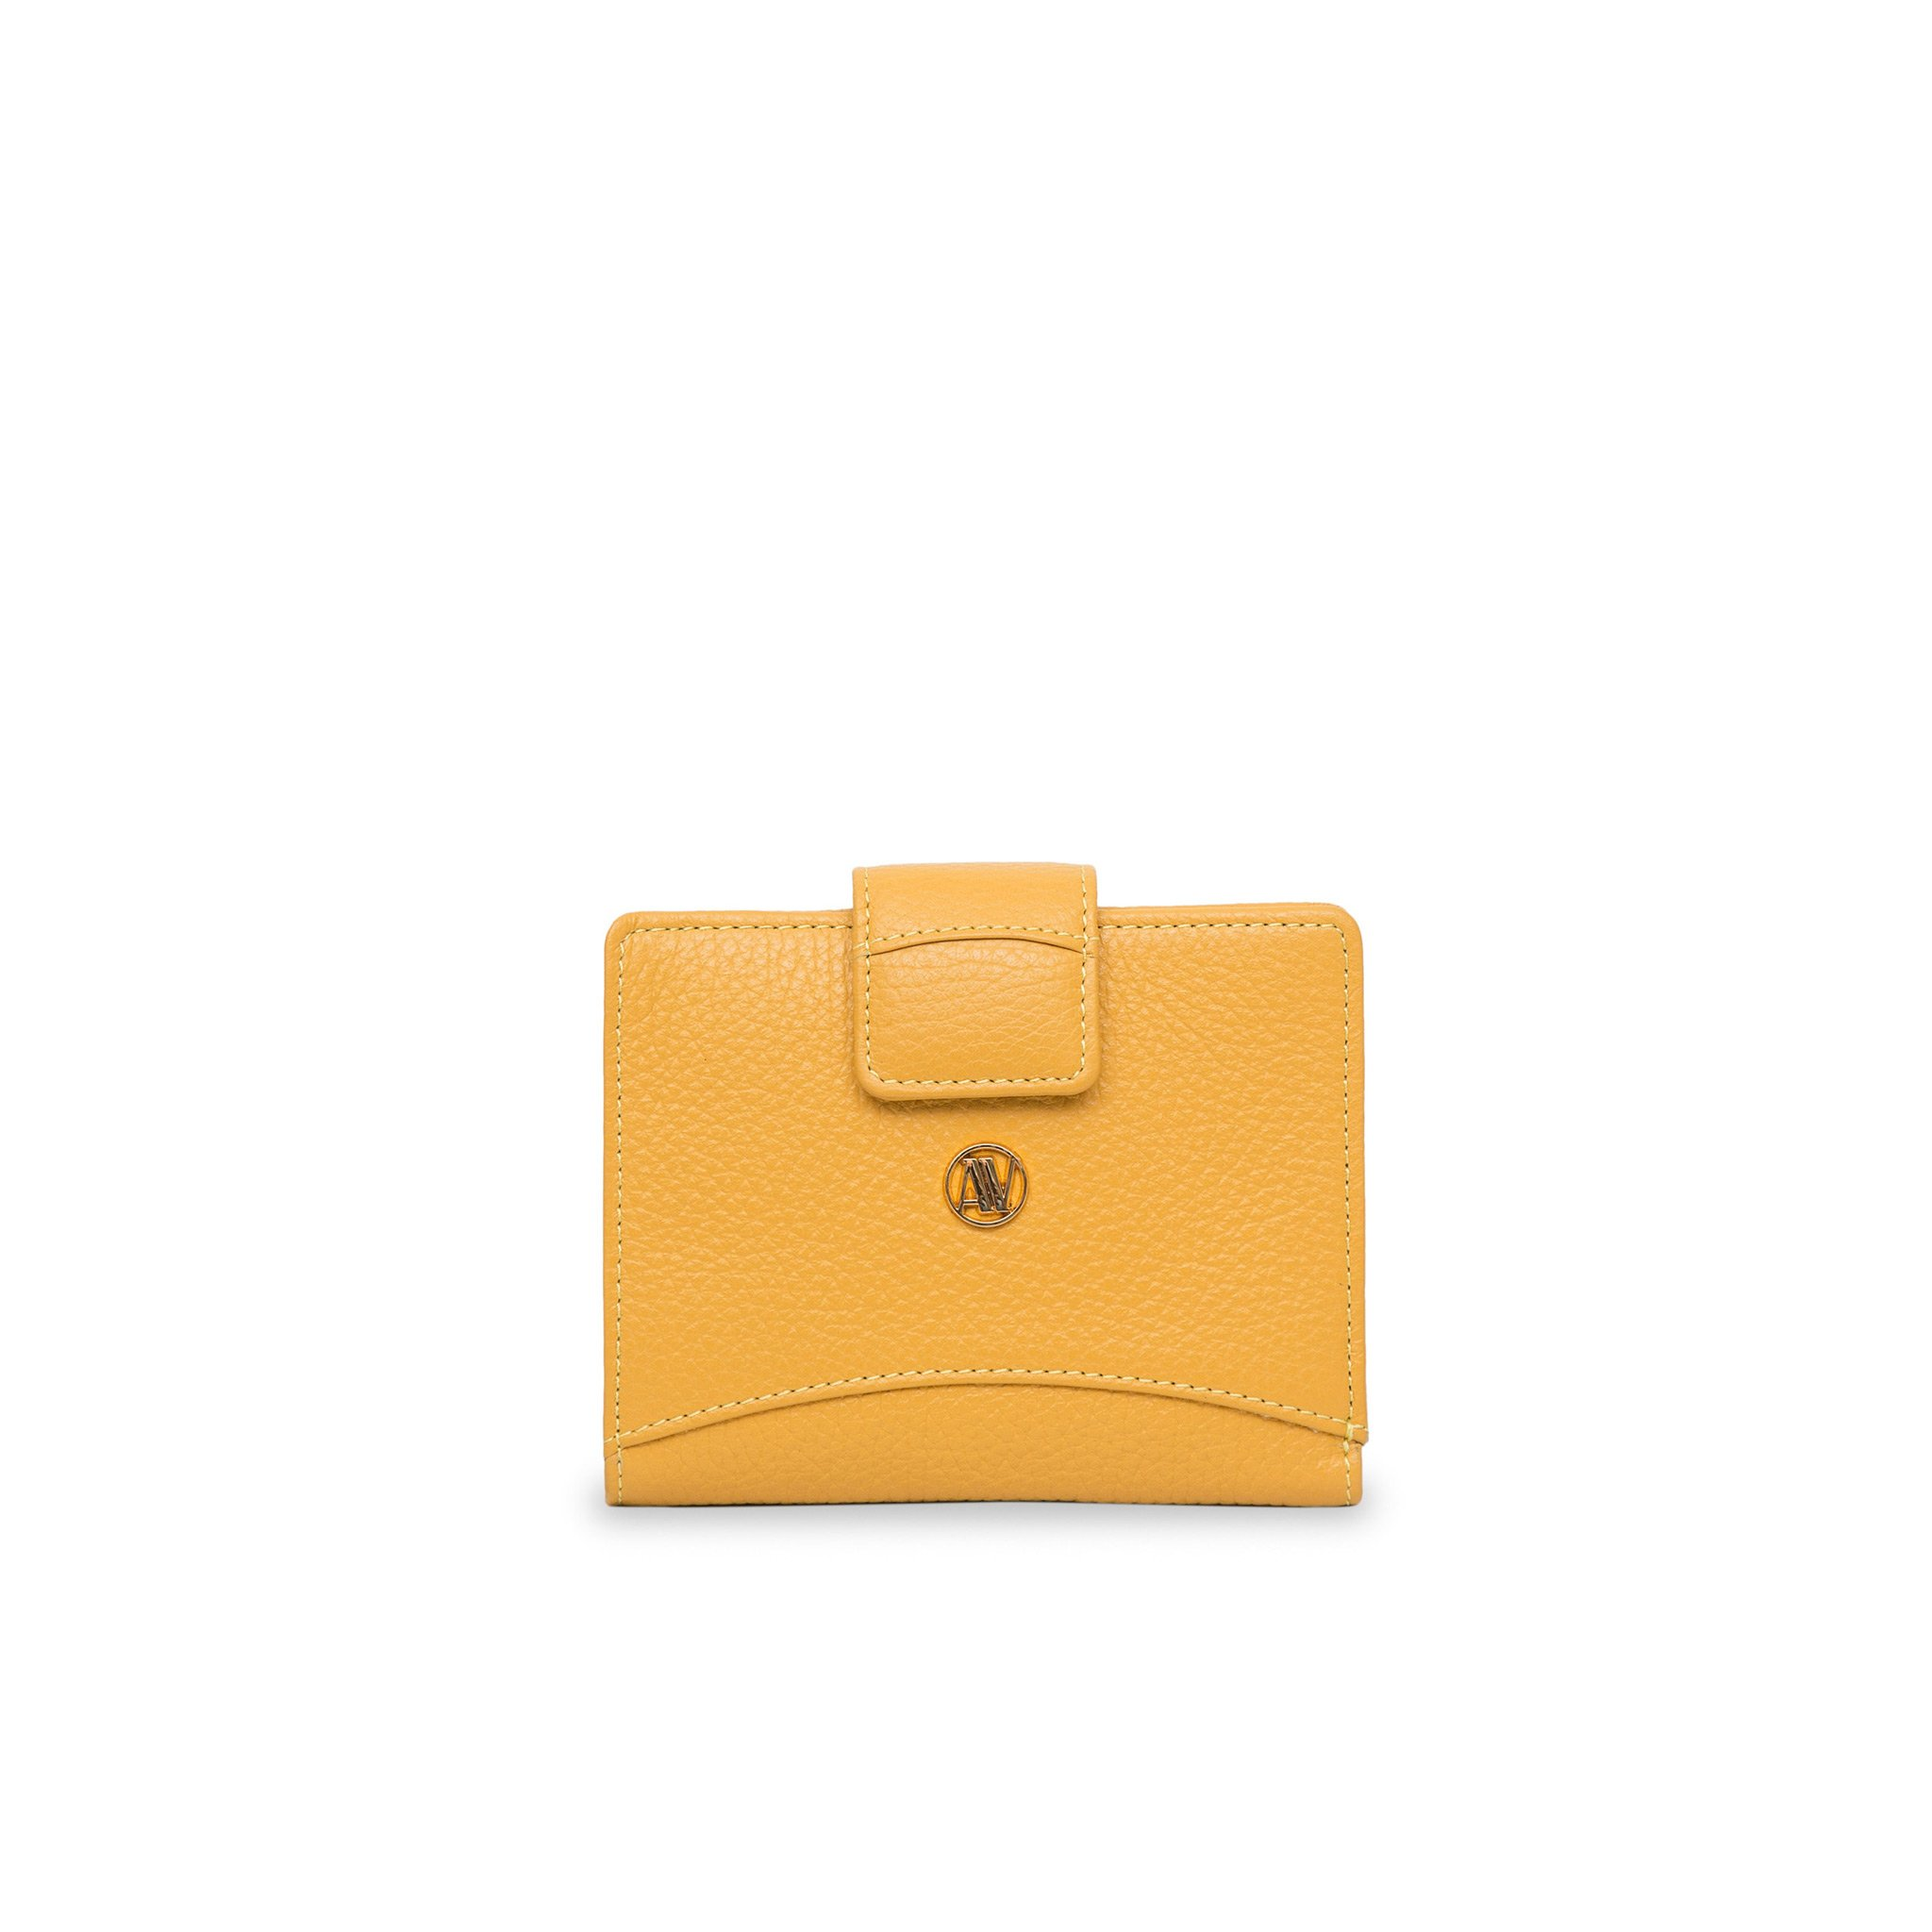 Ochre yellow small Rimini leather wallet